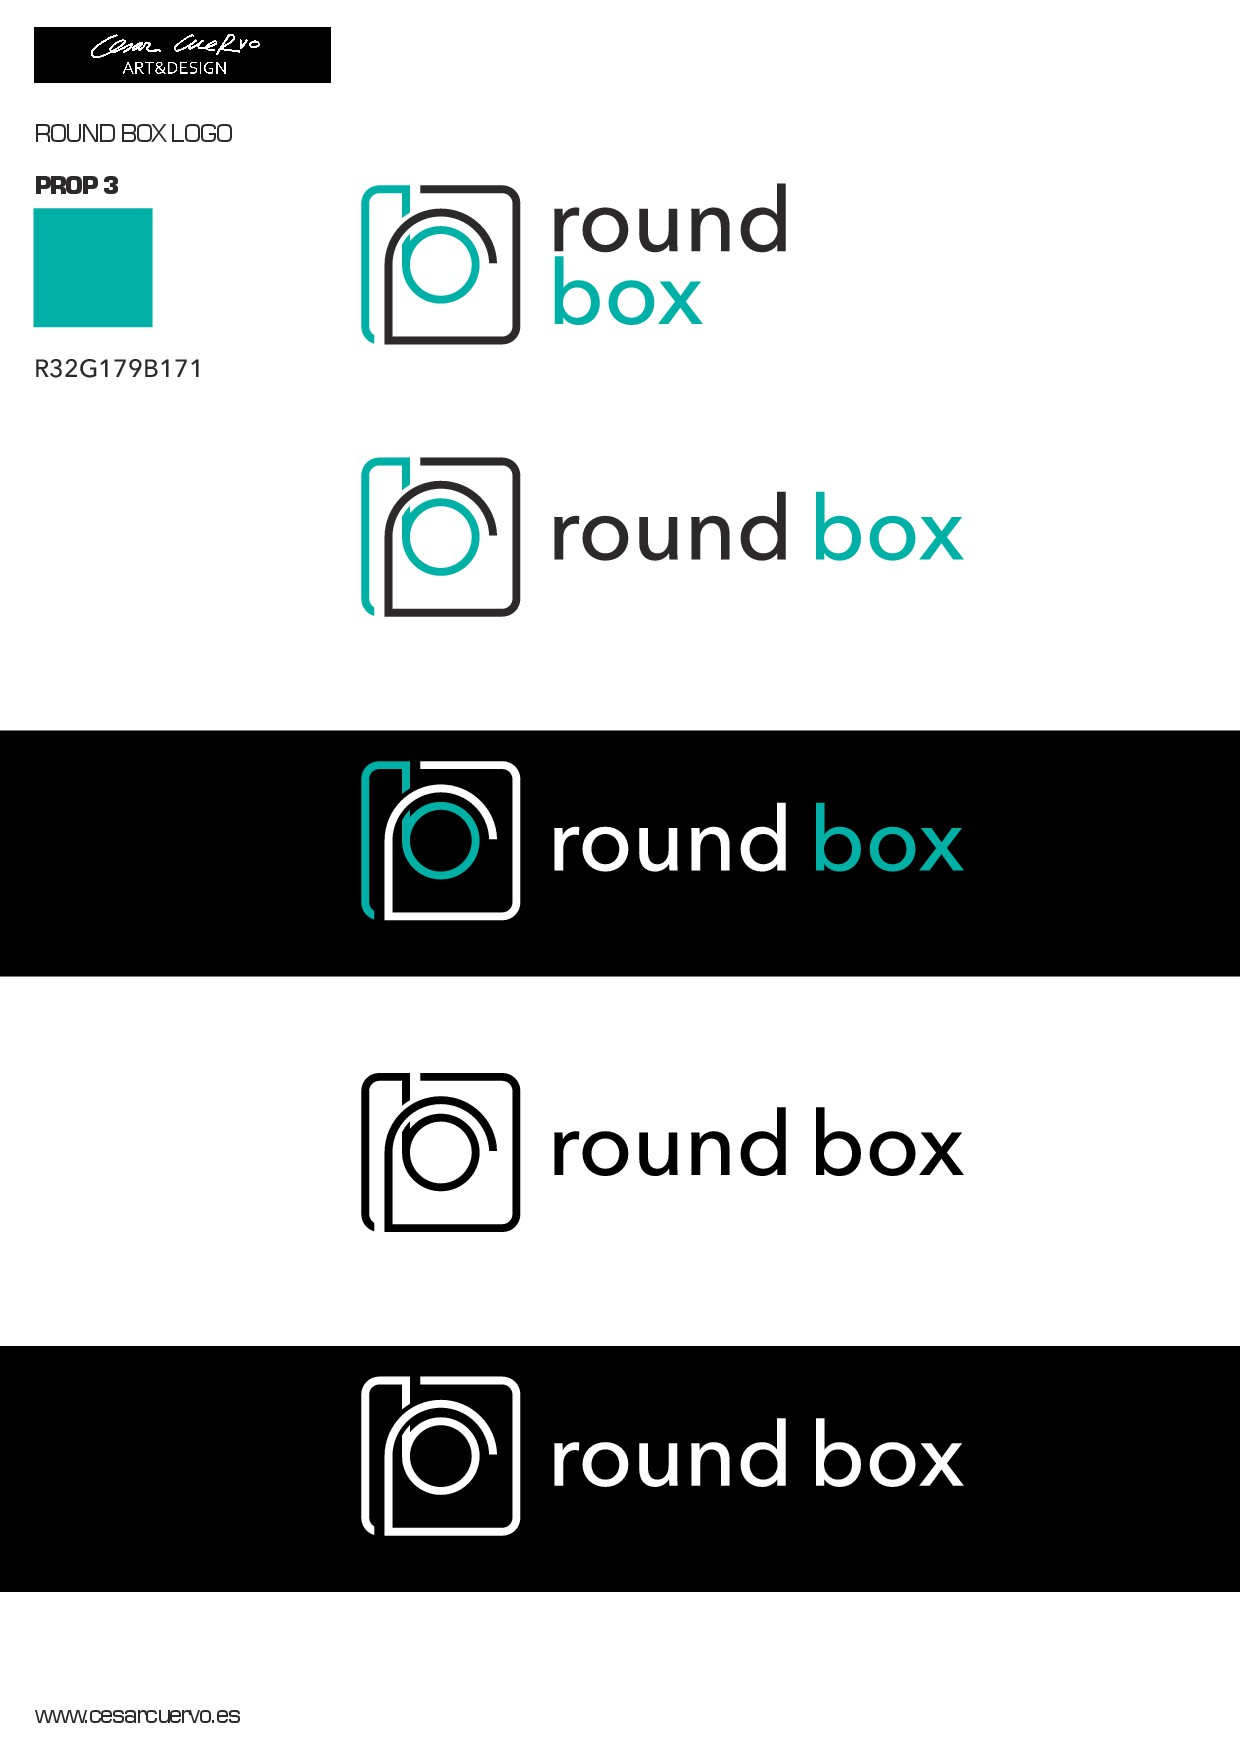 Round Box: creative and clever design